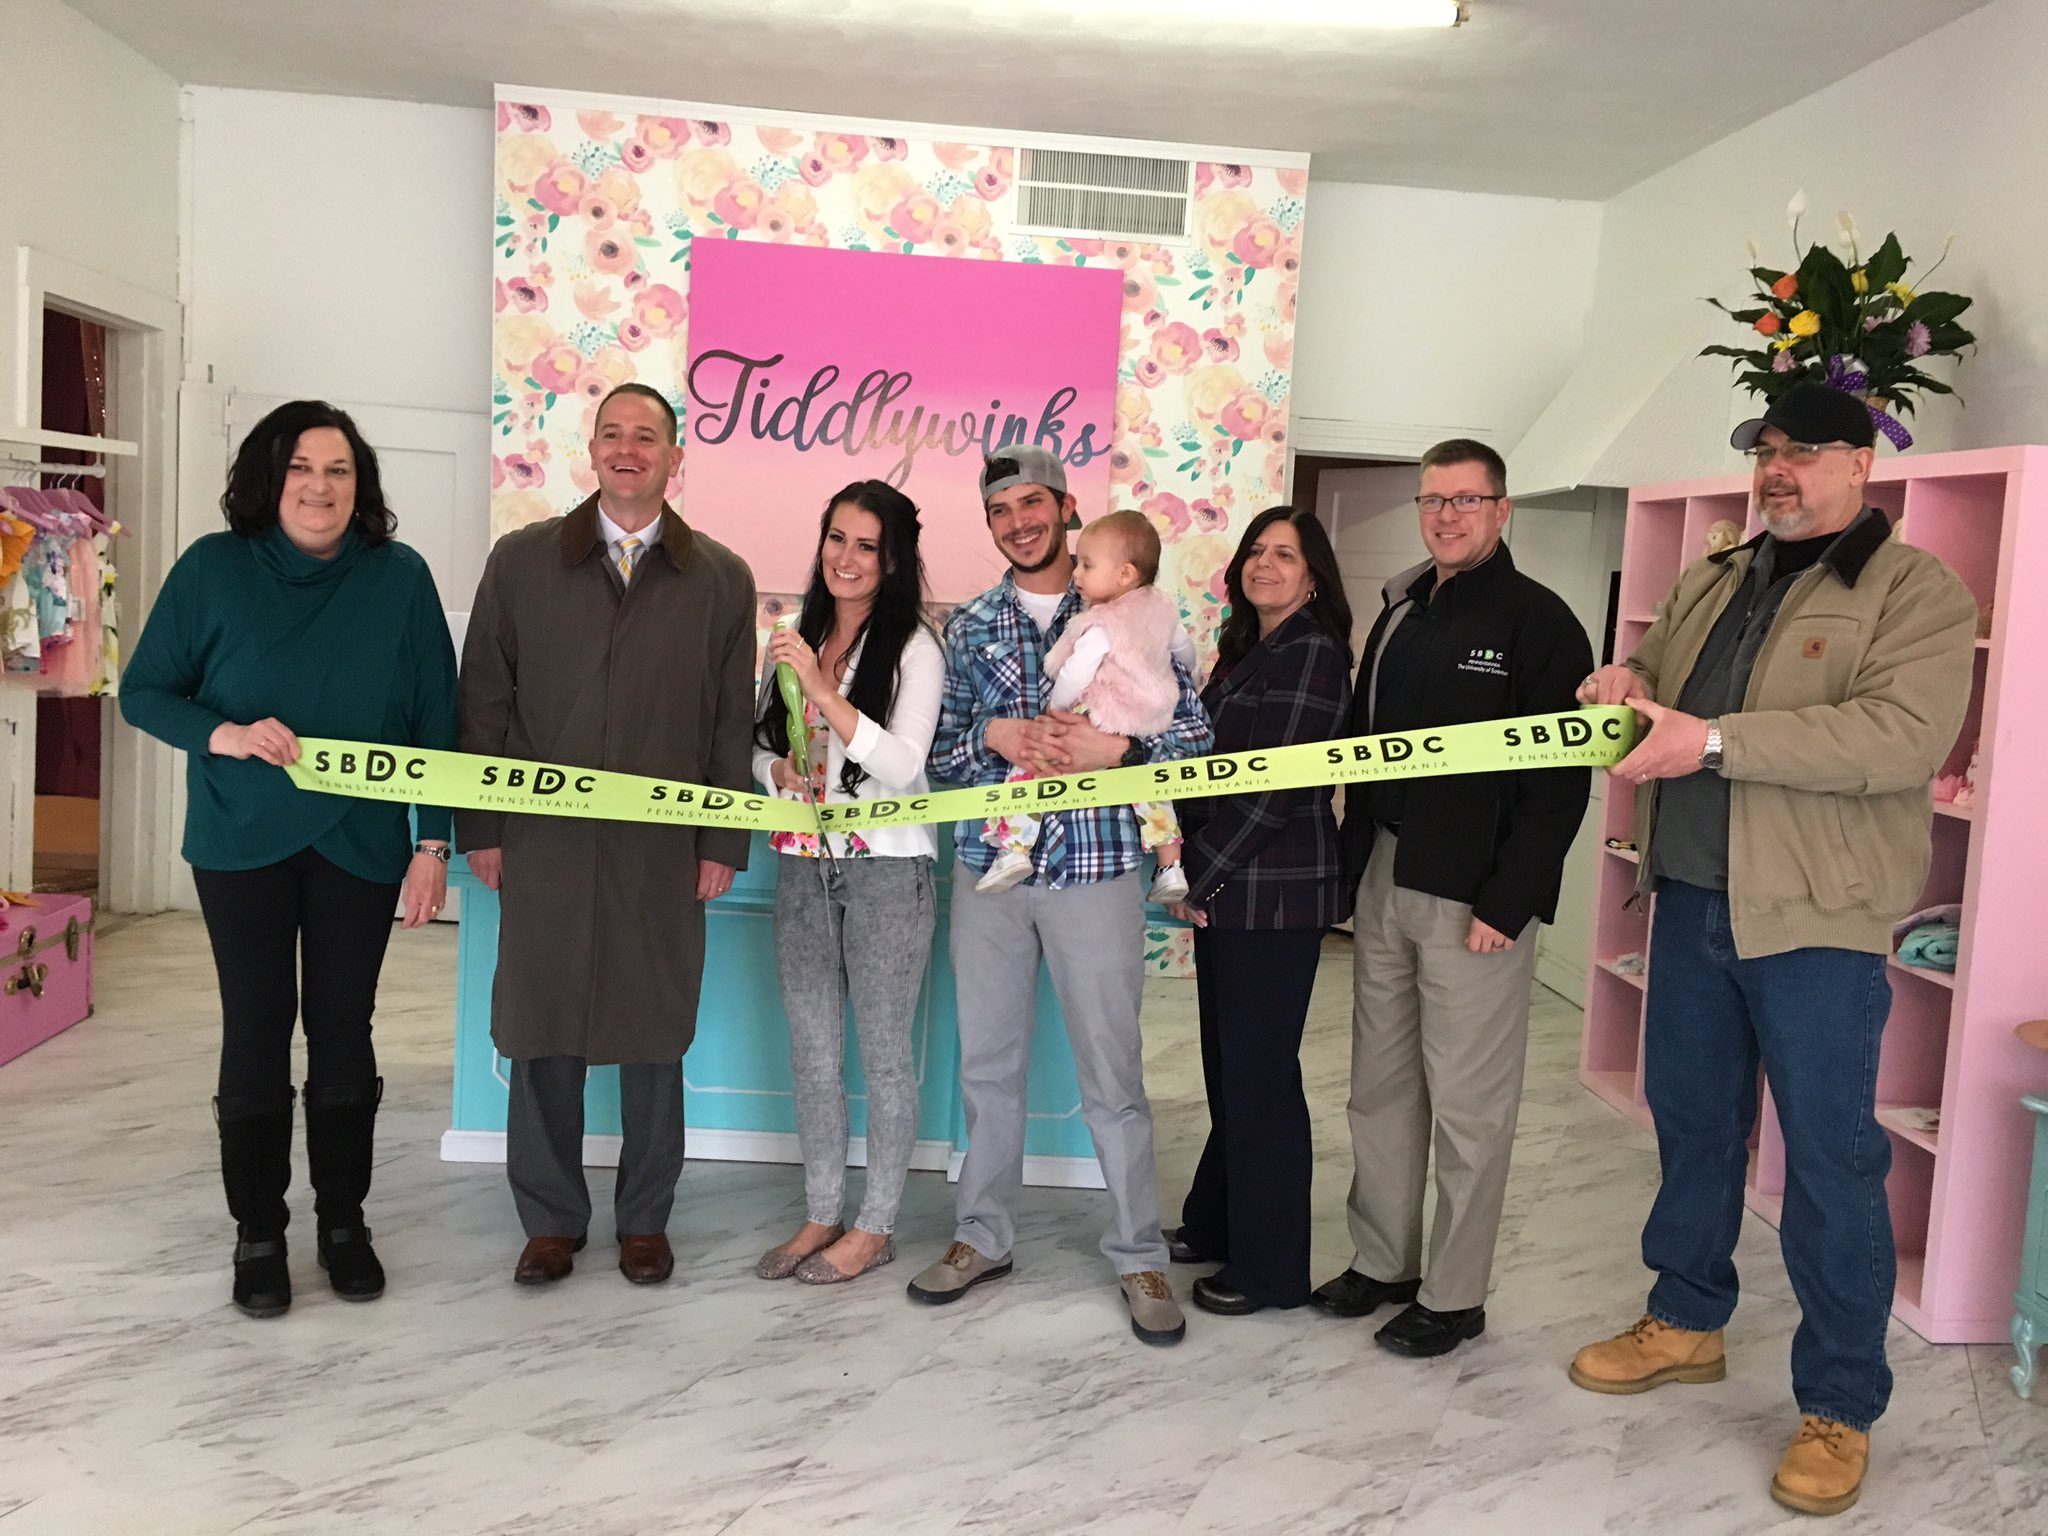 New Business Alert – Tiddlywinks Boutique Opens in Dunmore PA